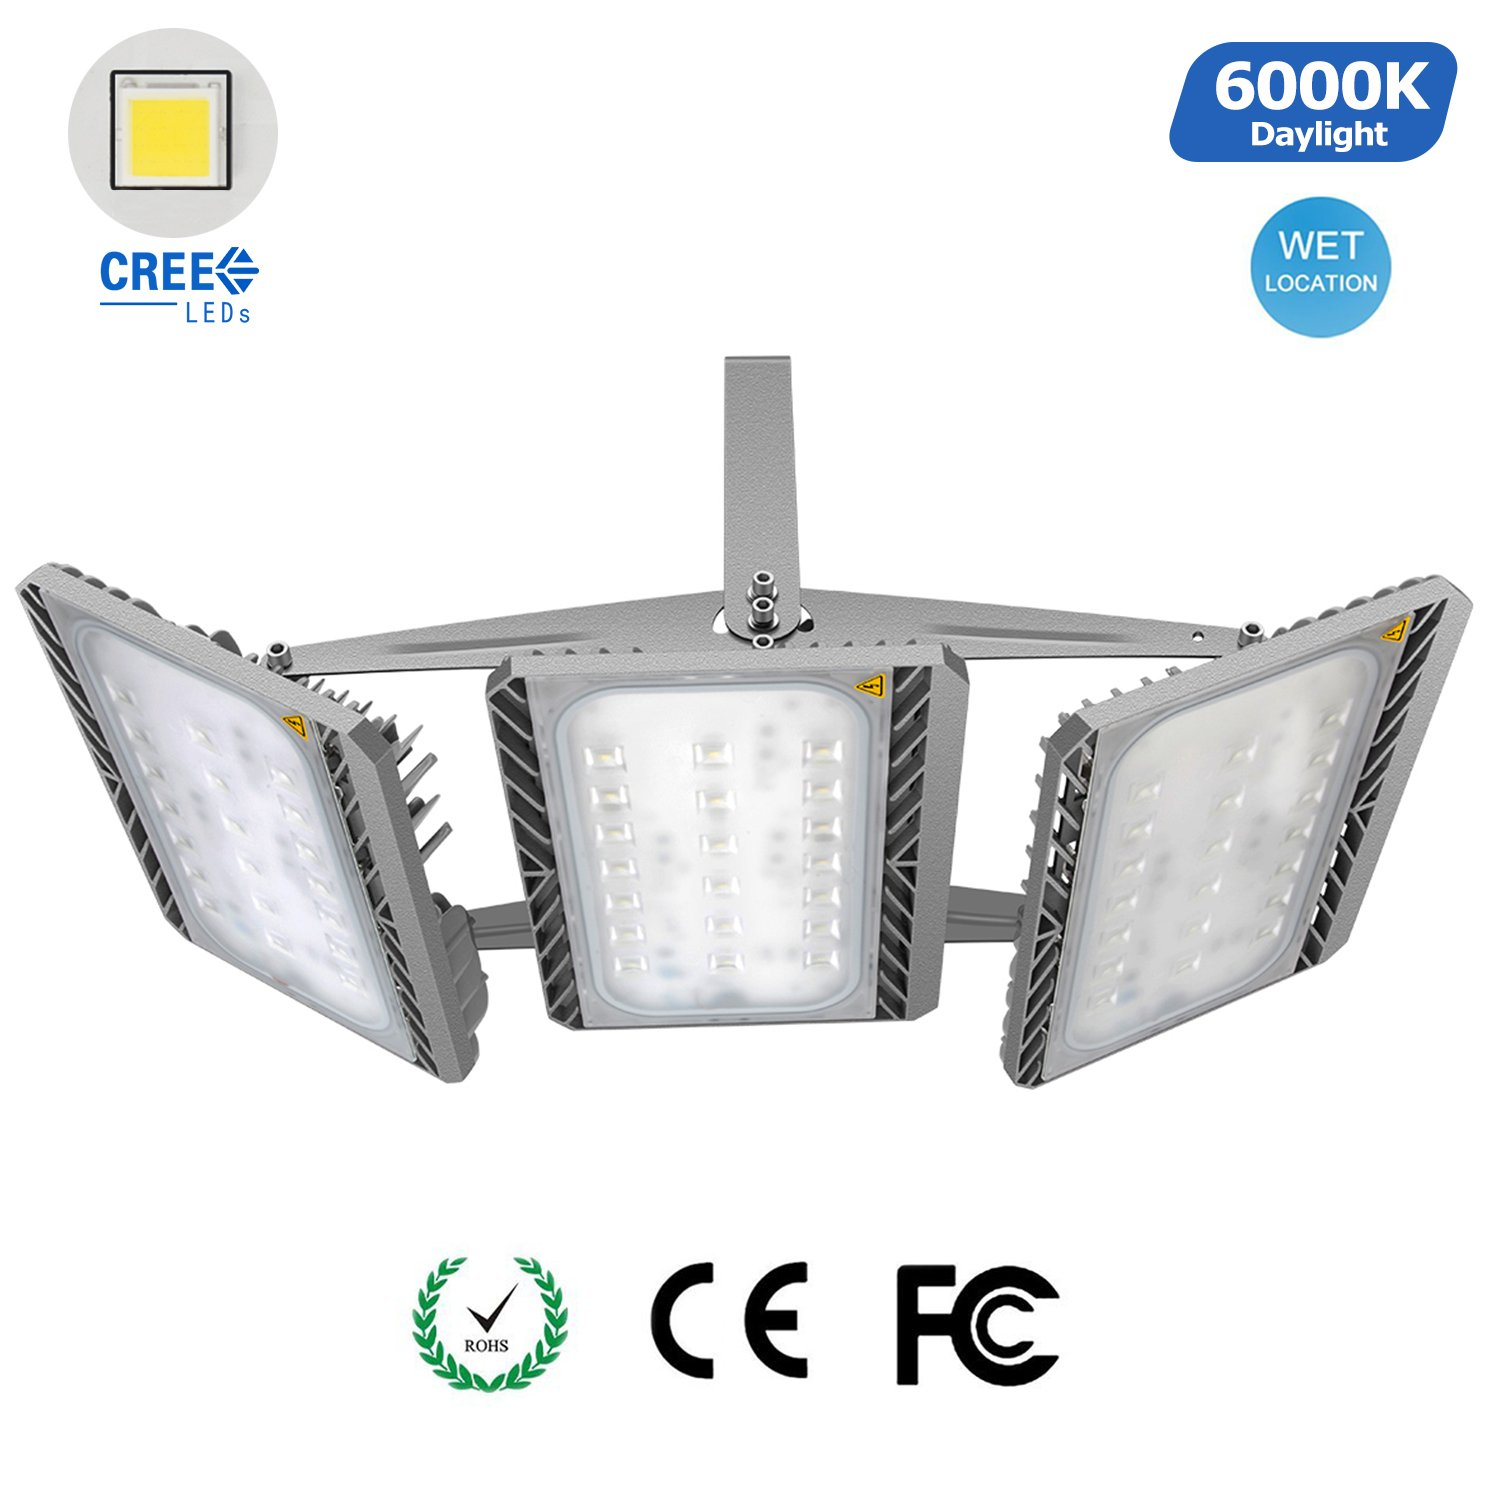 STASUN LED Flood Light Outdoor, 300W Super Bright Large Area Lighting, Cree LED Source, 27000lm, 6000K Daylight, Adjustable 3-Heads, Waterproof Security Lights for Yard Street Parking Lot by STASUN